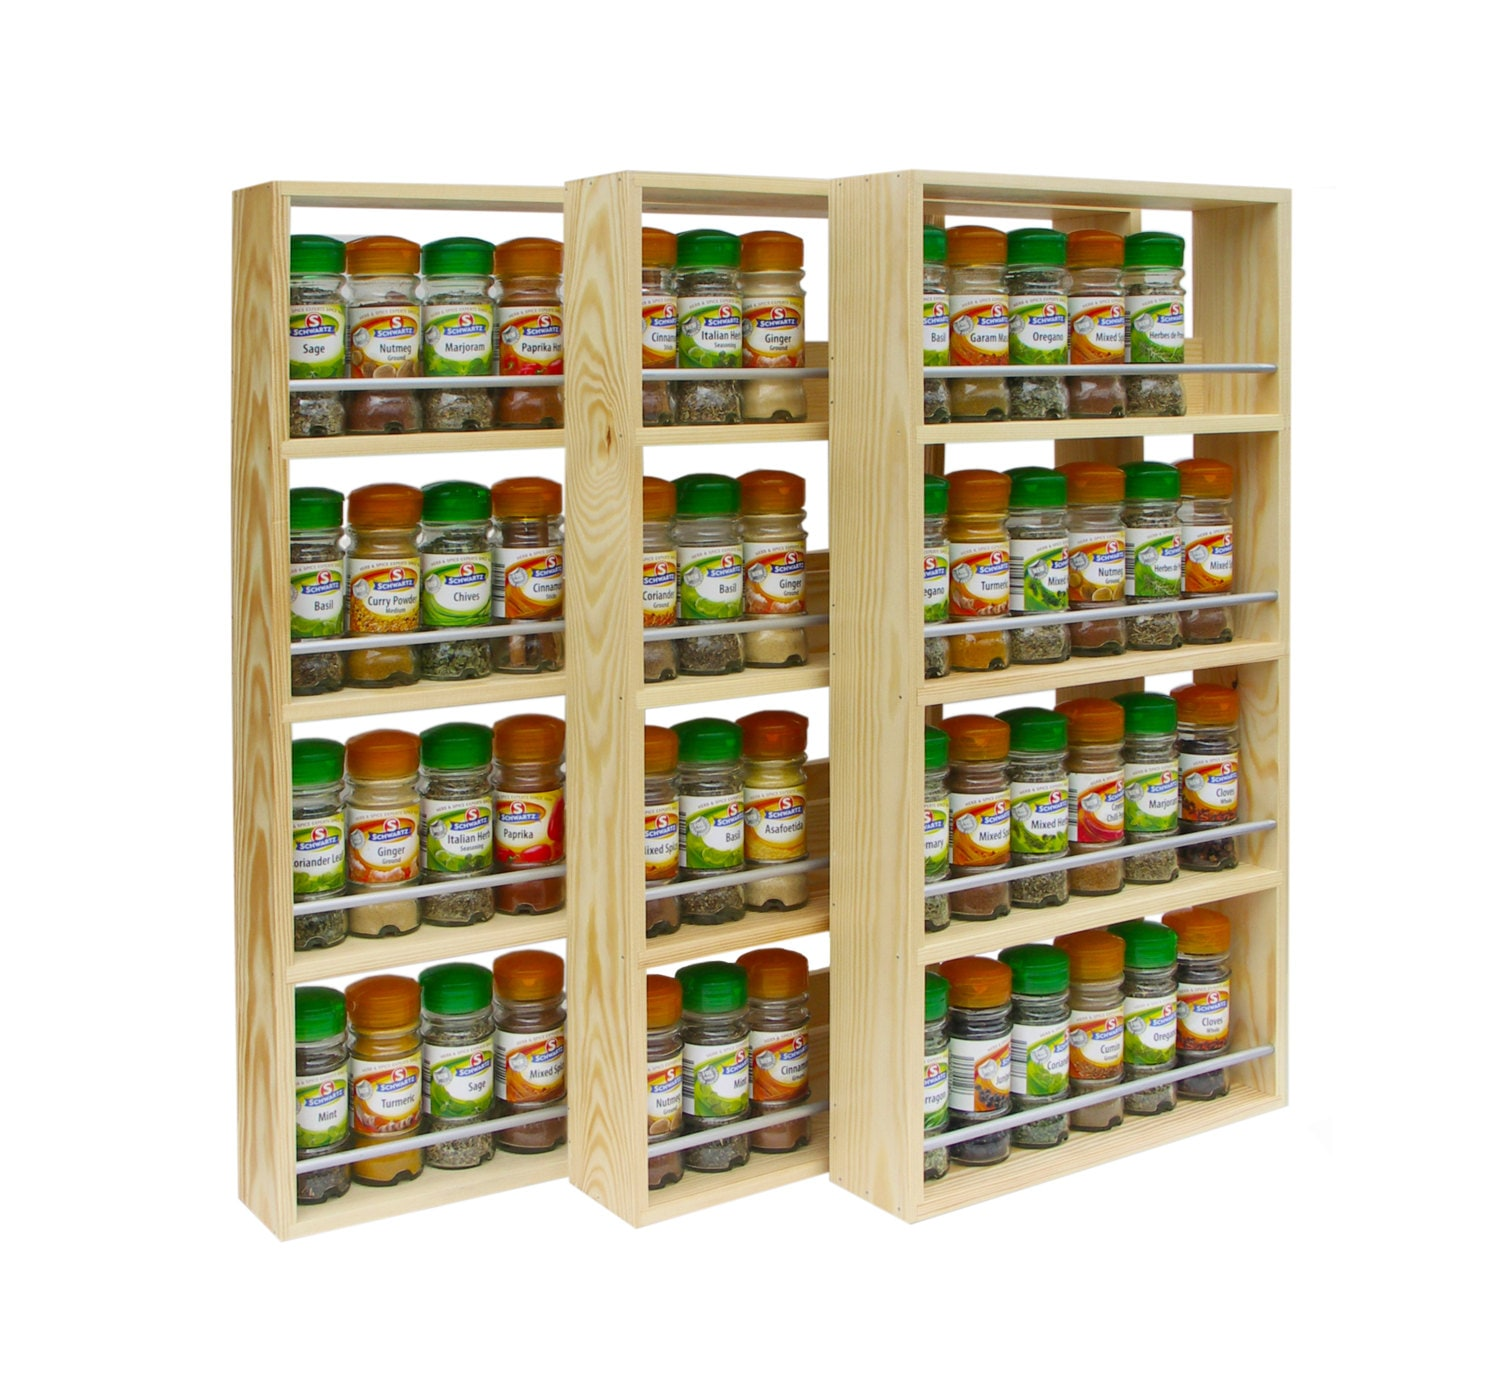 diy spice rack freestanding wooden spice rack contemporary modern 4 shelves freestanding